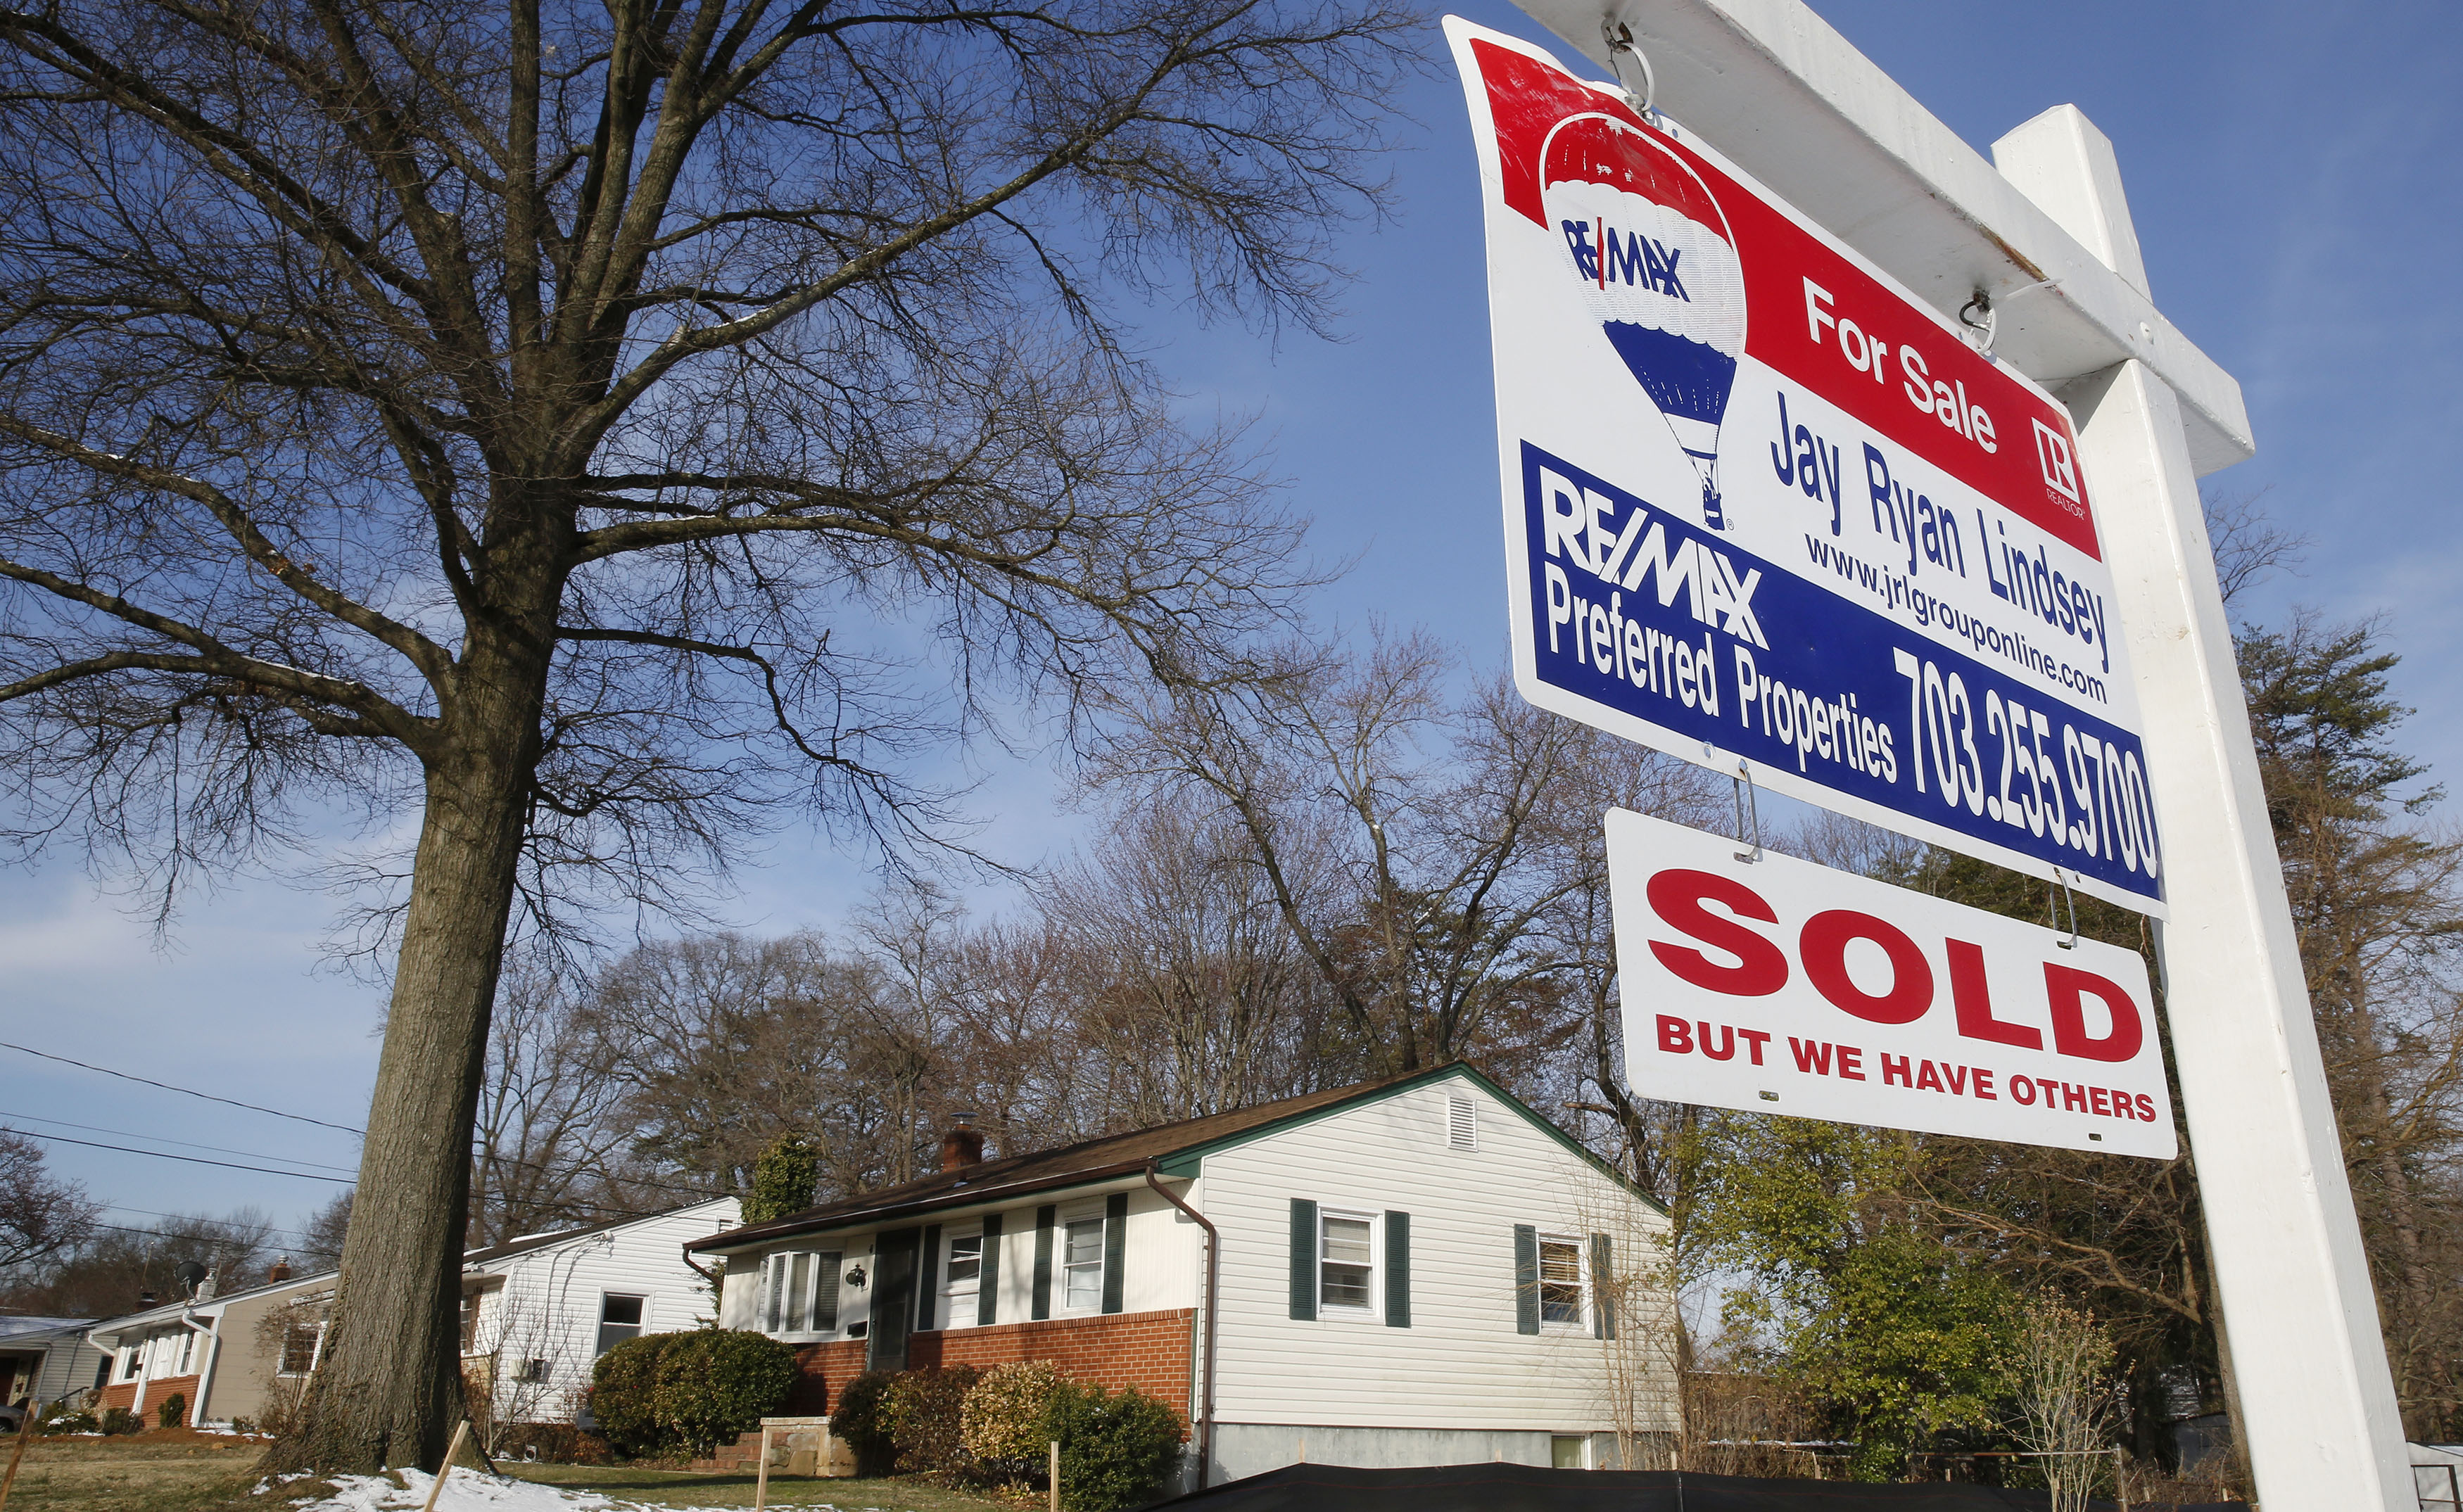 """FILE PHOTO: A home """"SOLD"""" sign hangs in front of a house in Vienna, on the day the National Association of Realtors issues its Pending Home Sales for February report, in Virginia March 27, 2014. REUTERS/Larry Downing"""